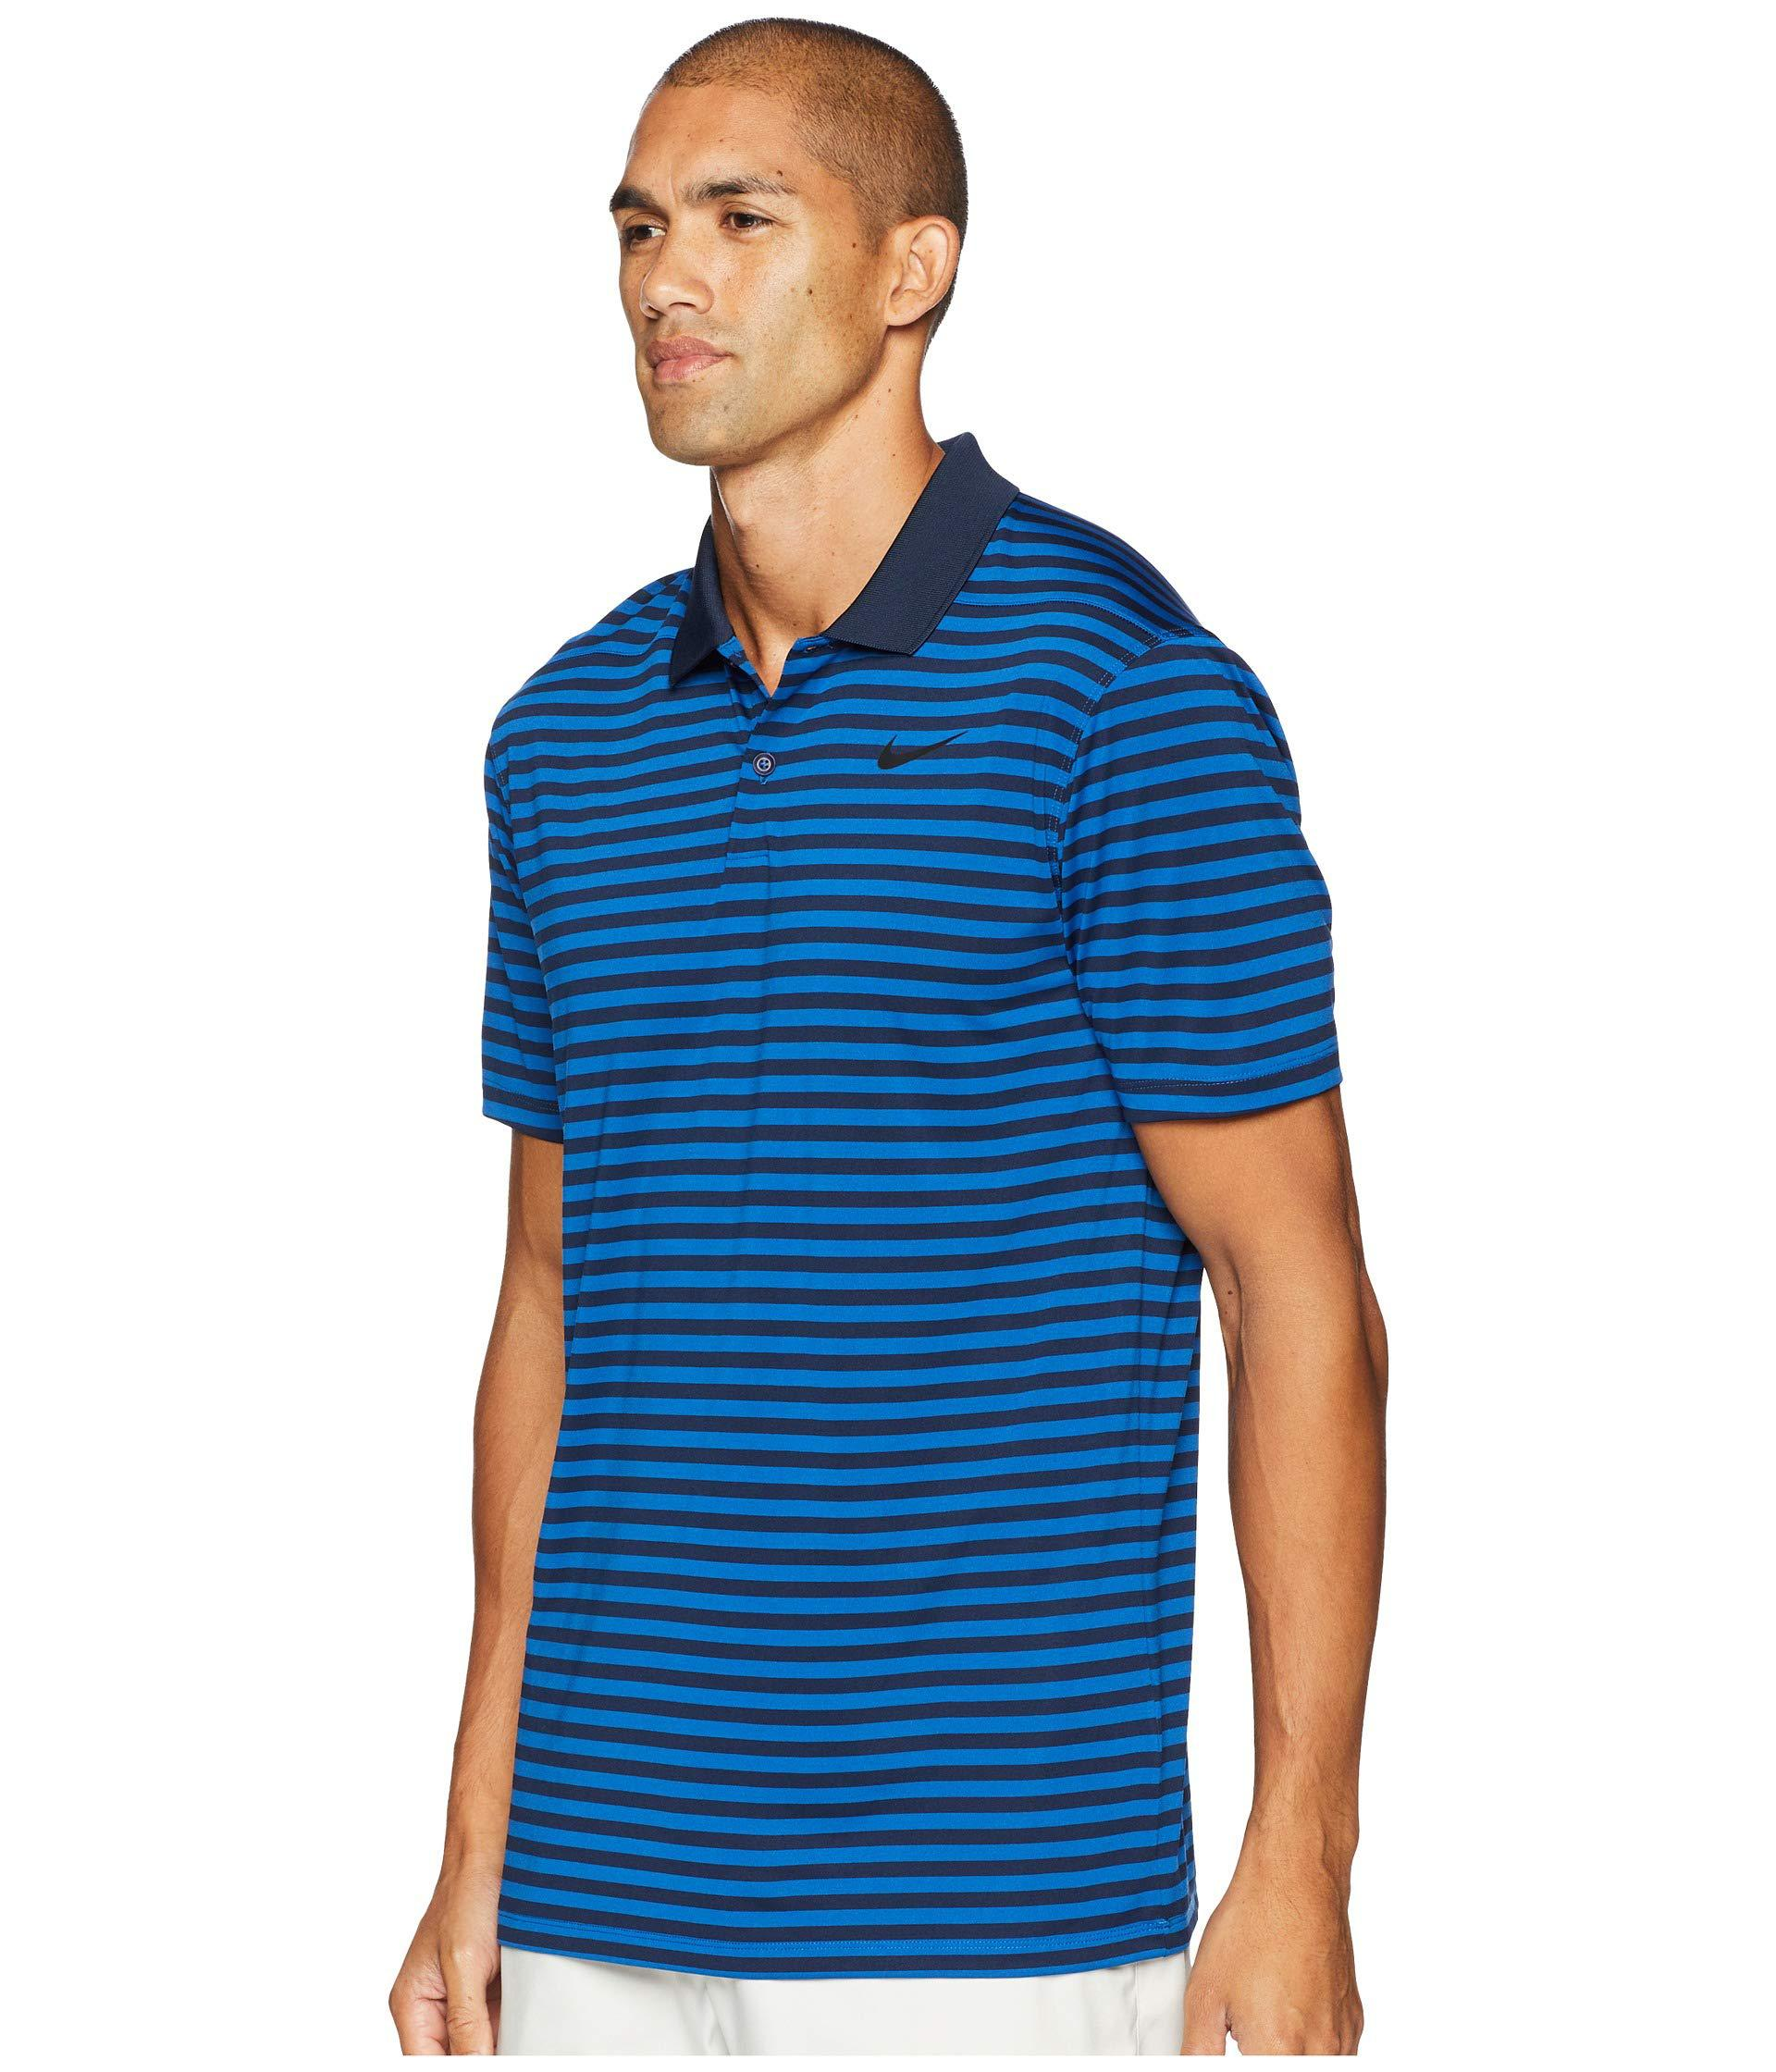 28bdbdb00a50 Lyst - Nike Dri-fittm Mini-stripe Victory Polo in Blue for Men